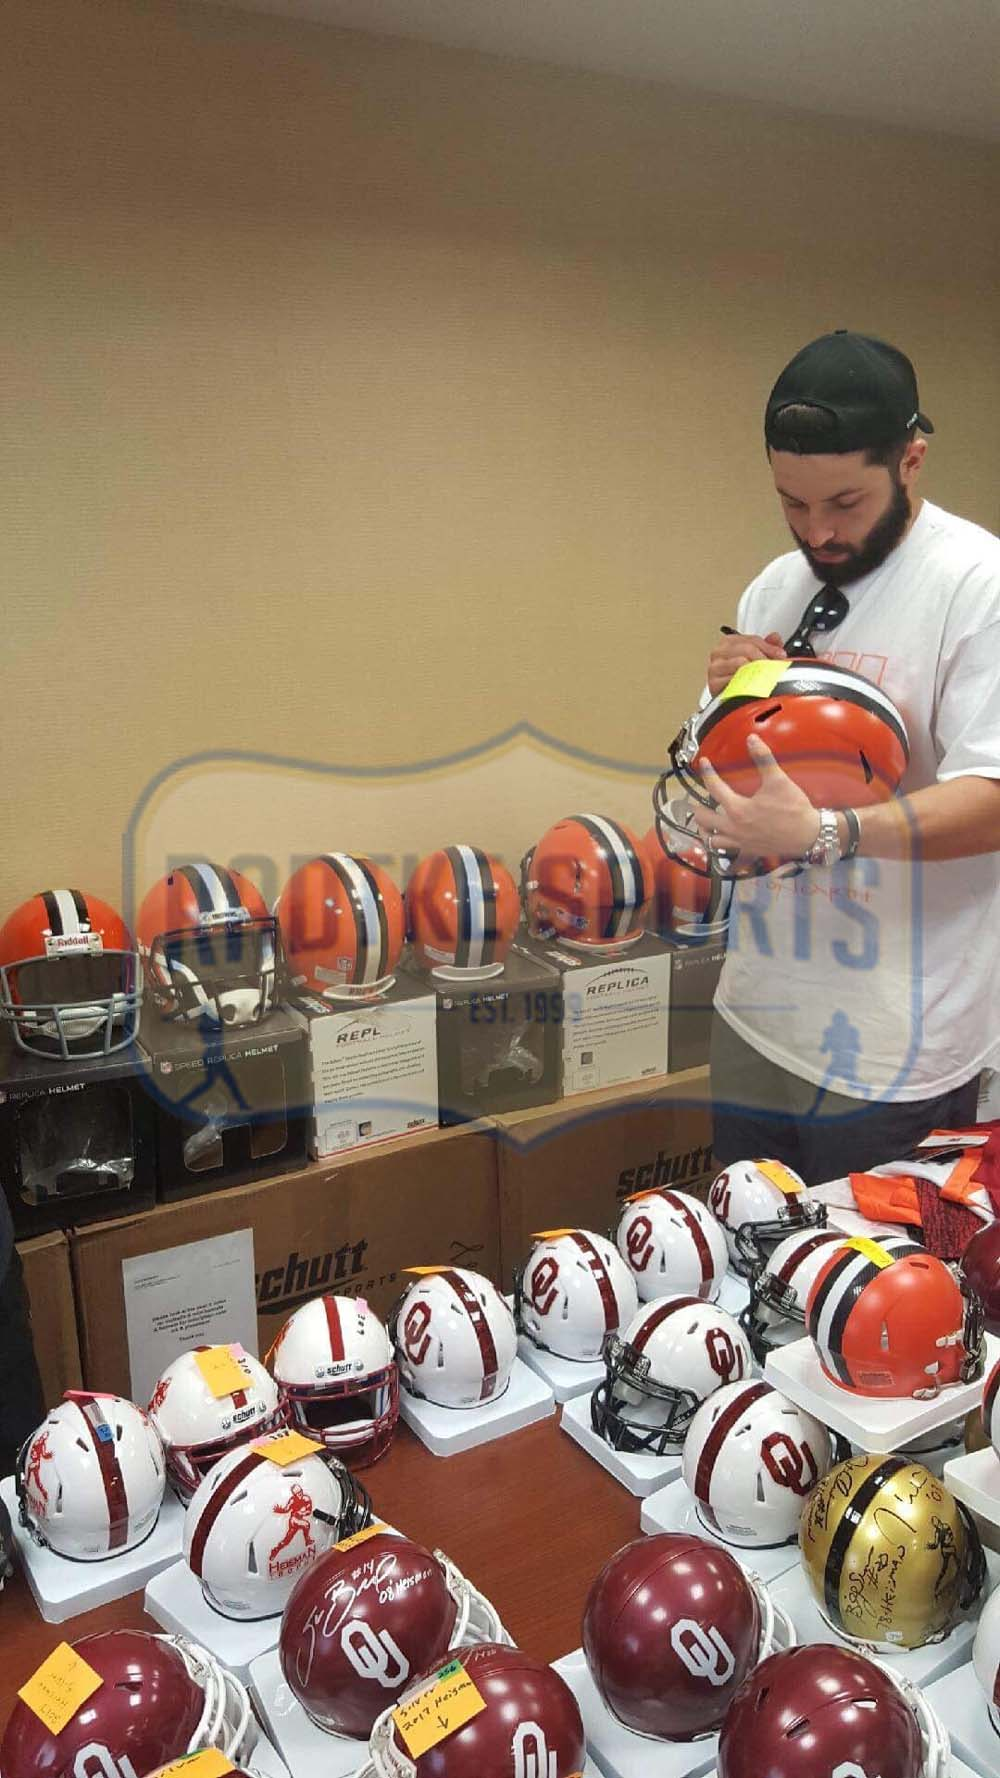 a0dd91a2 Baker Mayfield Signed Cleveland Browns Schutt Full-Size NFL Speed Helmet  WIth